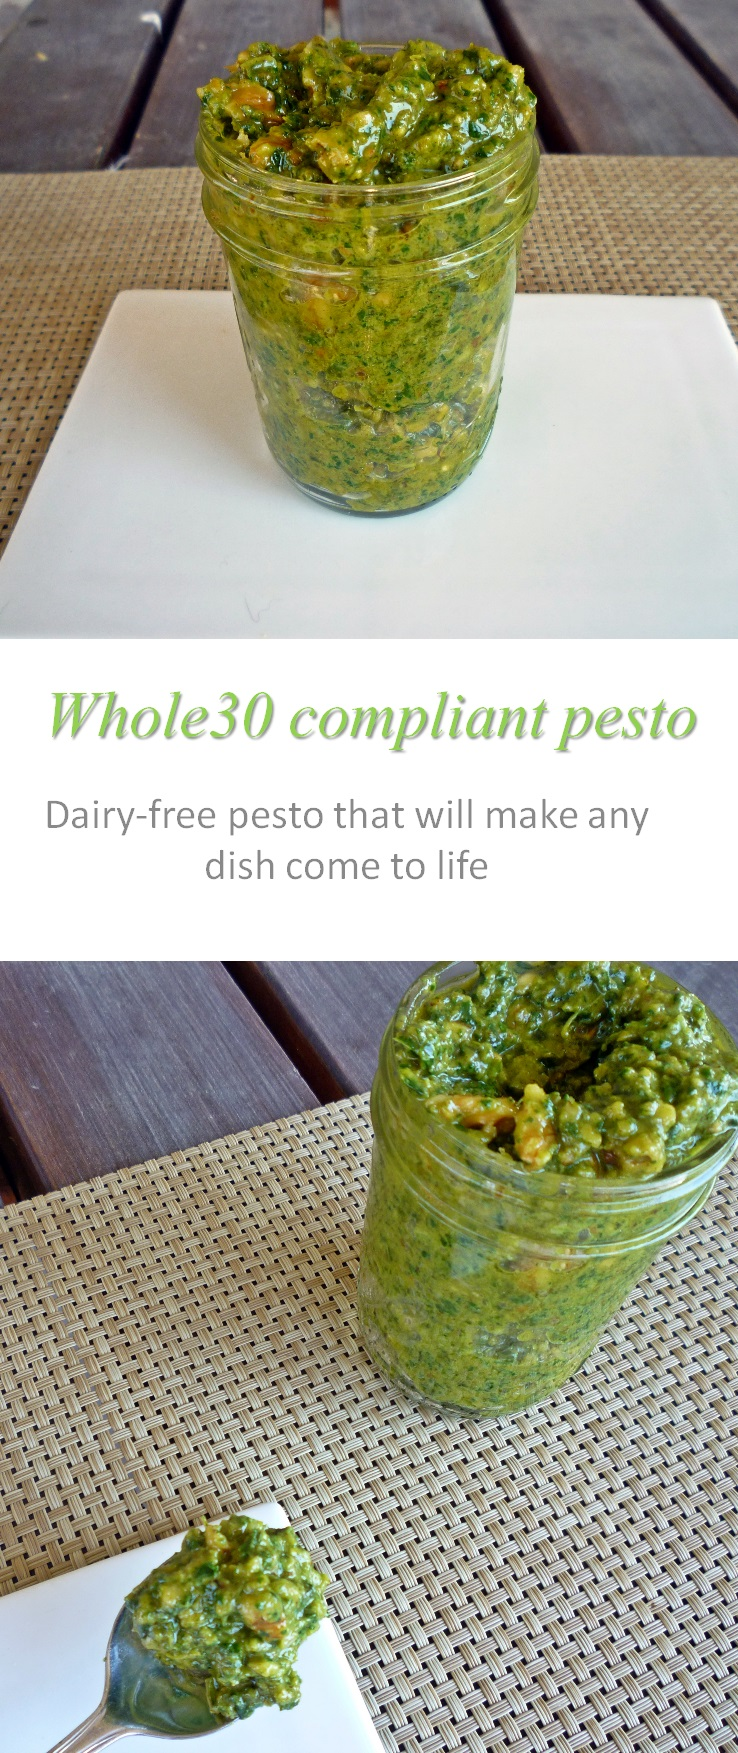 A Whole30 compliant, dairy-free pesto sauce that makes any meal come to life! #pesto